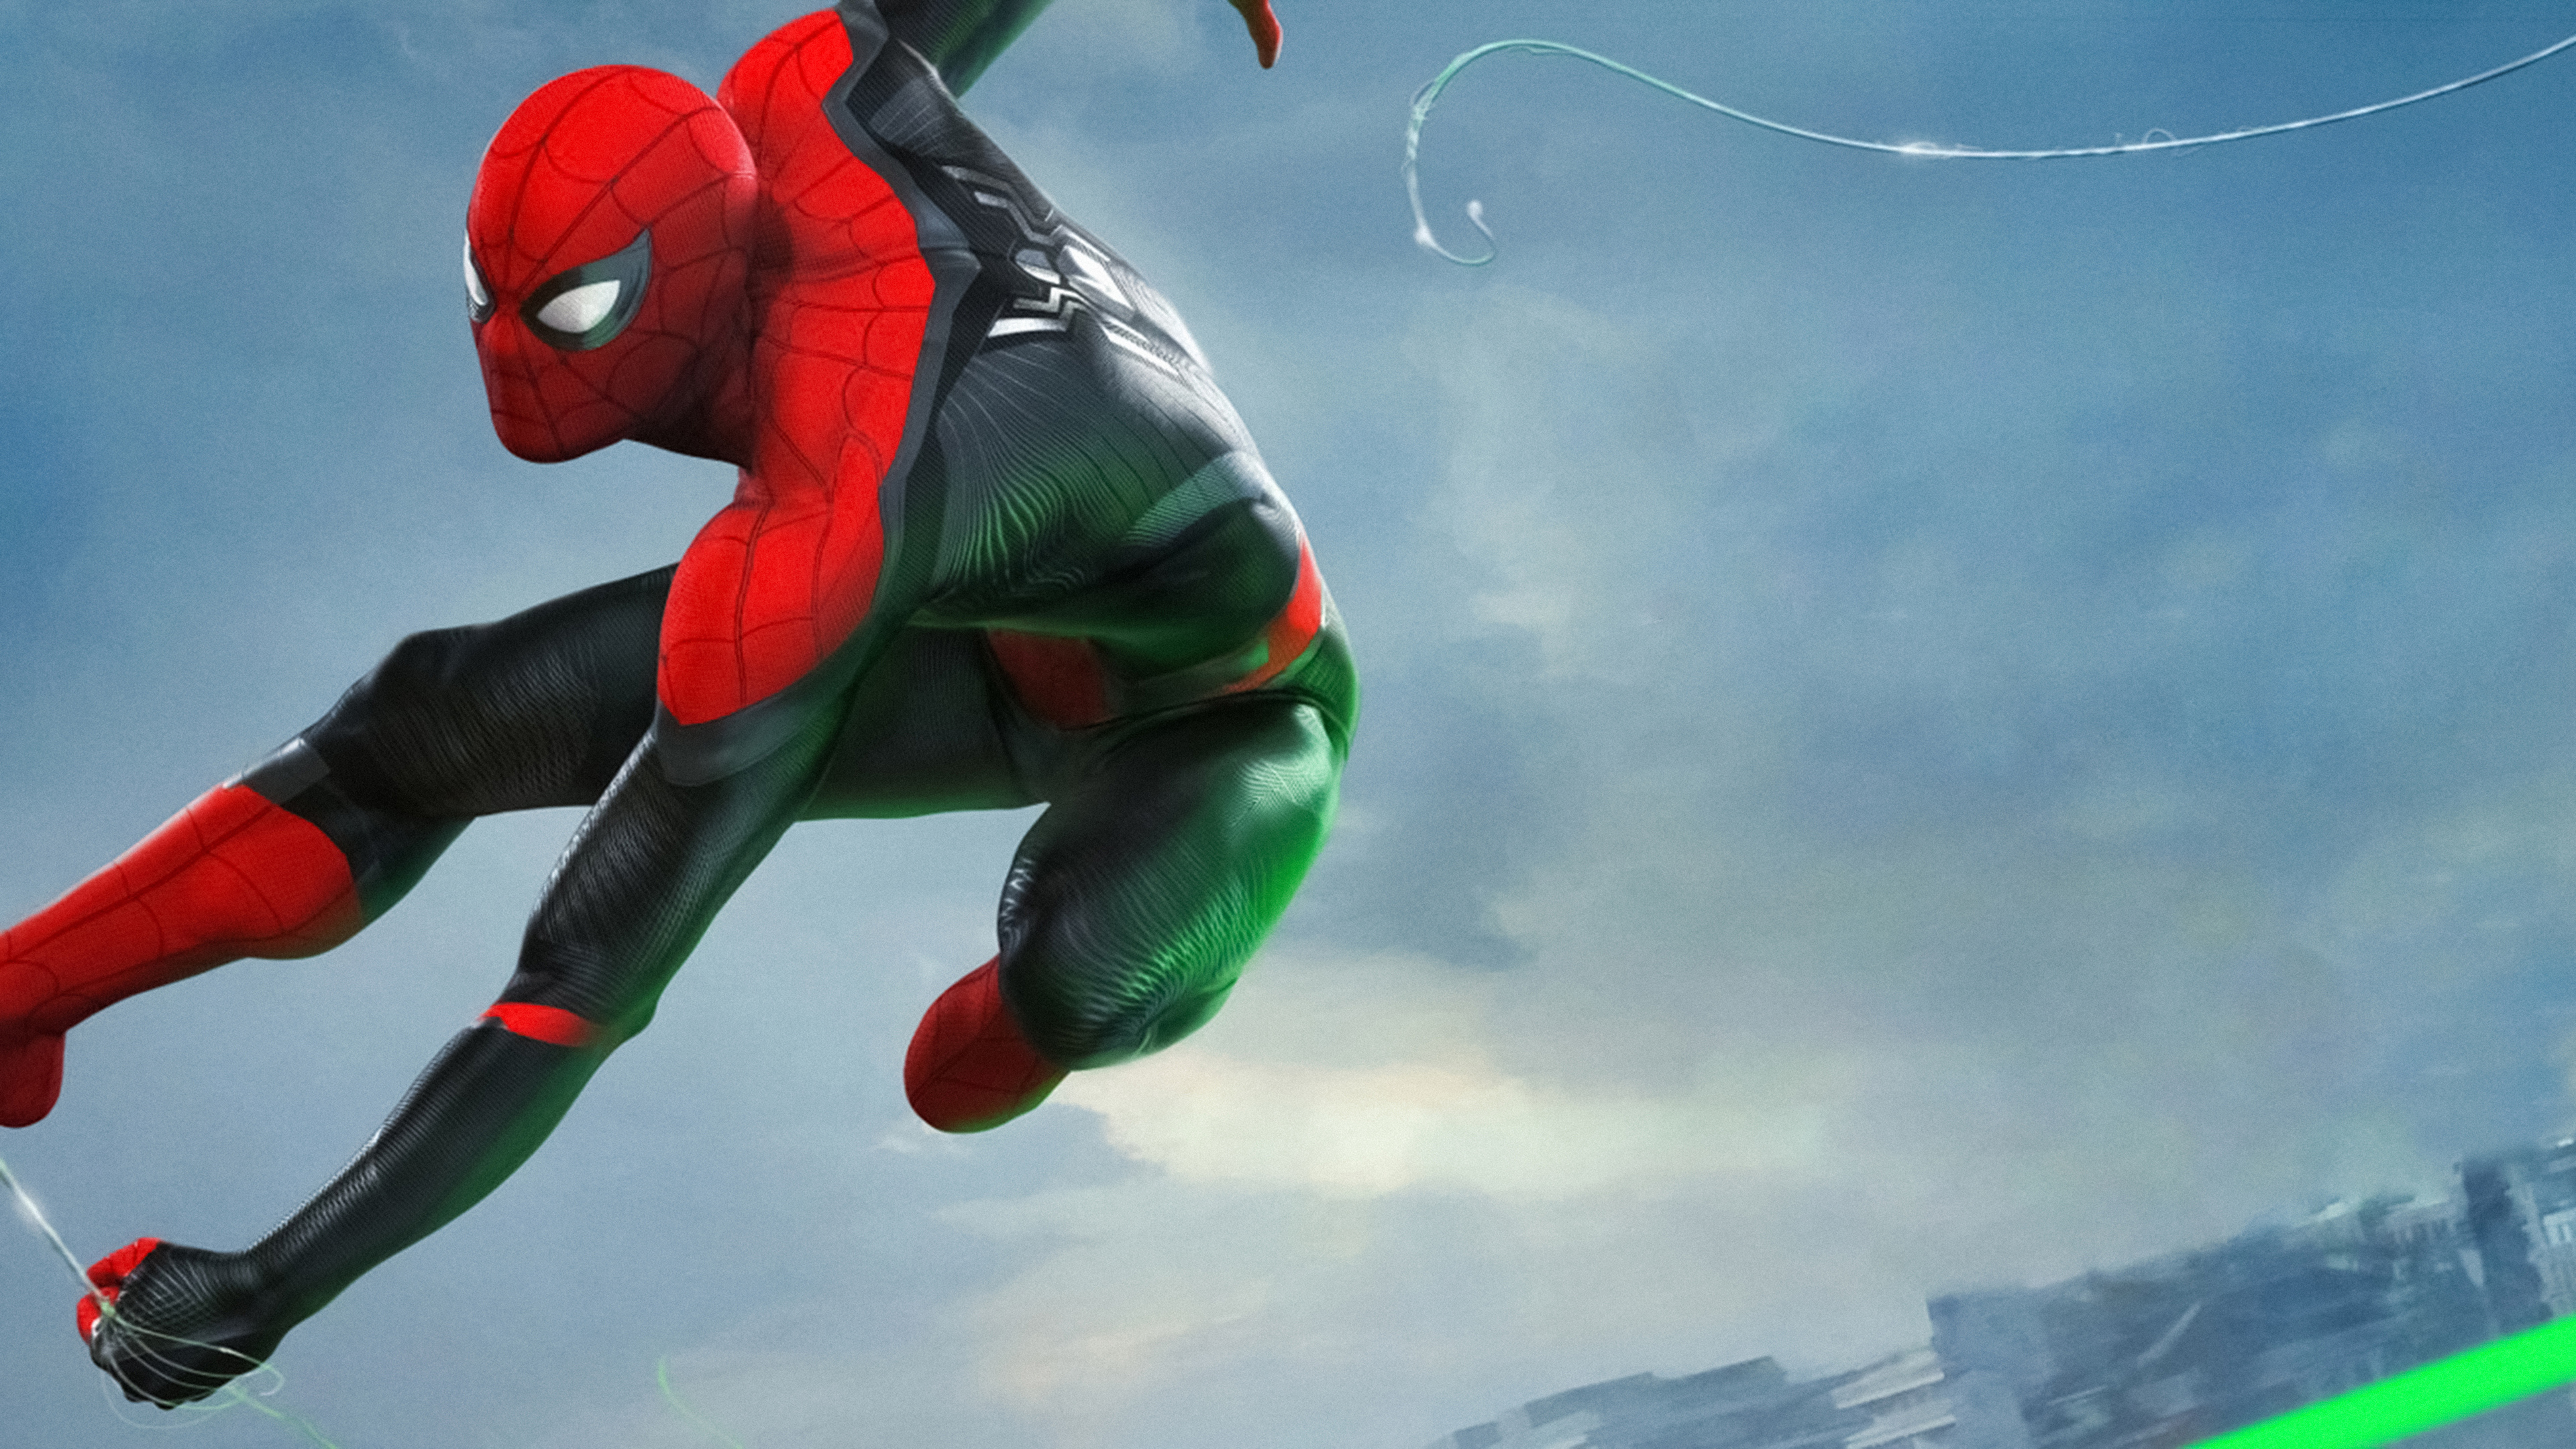 spiderman far fromhome movie 1562107145 - Spiderman Far Fromhome Movie - tom holland wallpapers, superheroes wallpapers, spiderman wallpapers, spiderman far from home wallpapers, movies wallpapers, hd-wallpapers, 5k wallpapers, 4k-wallpapers, 2019 movies wallpapers